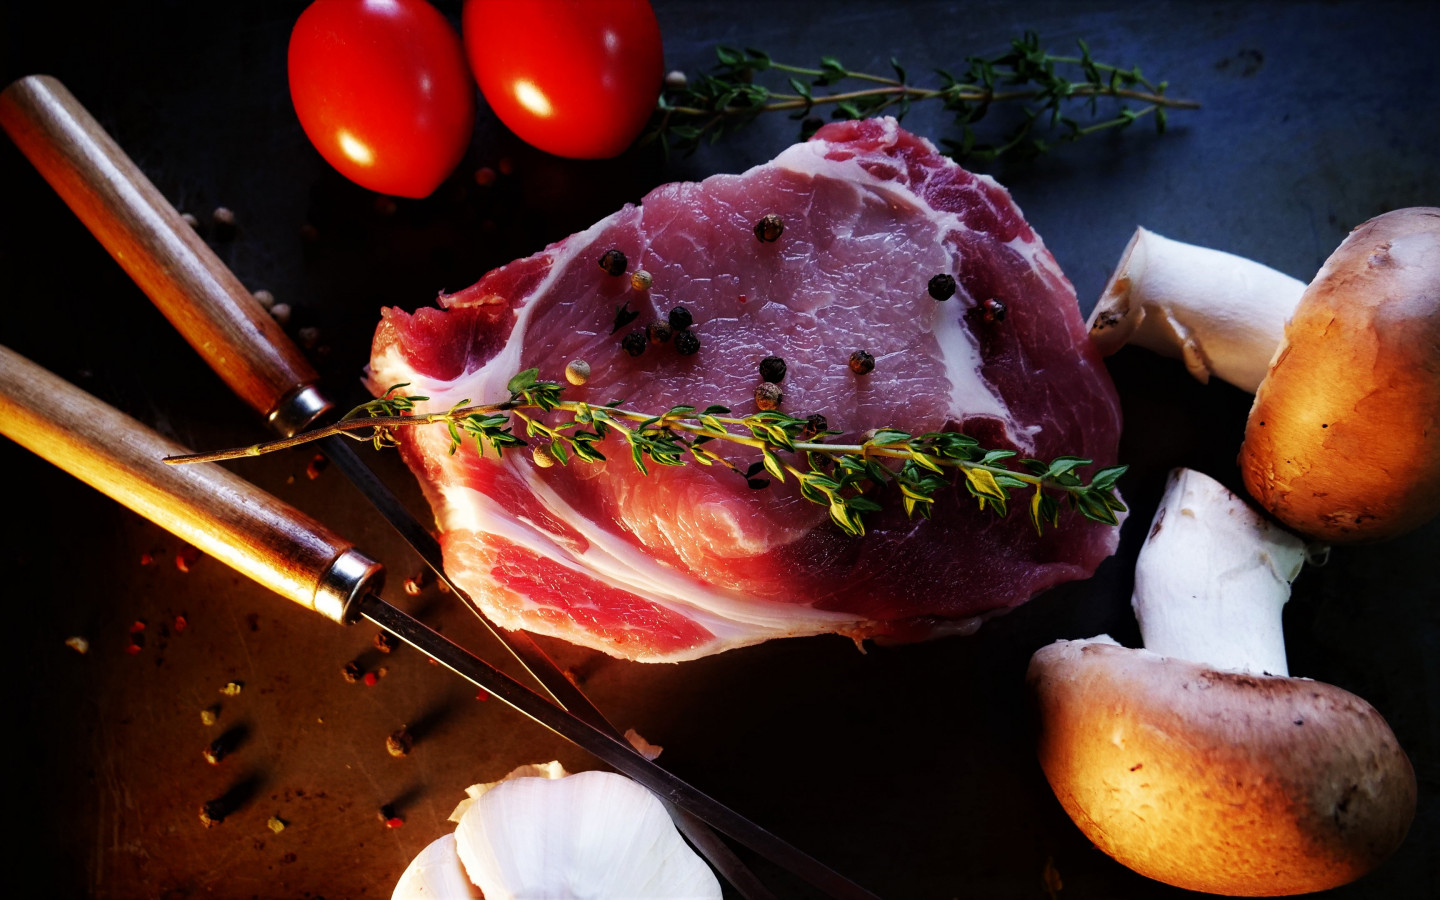 Ready for a tasty steak with mushrooms, tomatoes wallpaper 1440x900